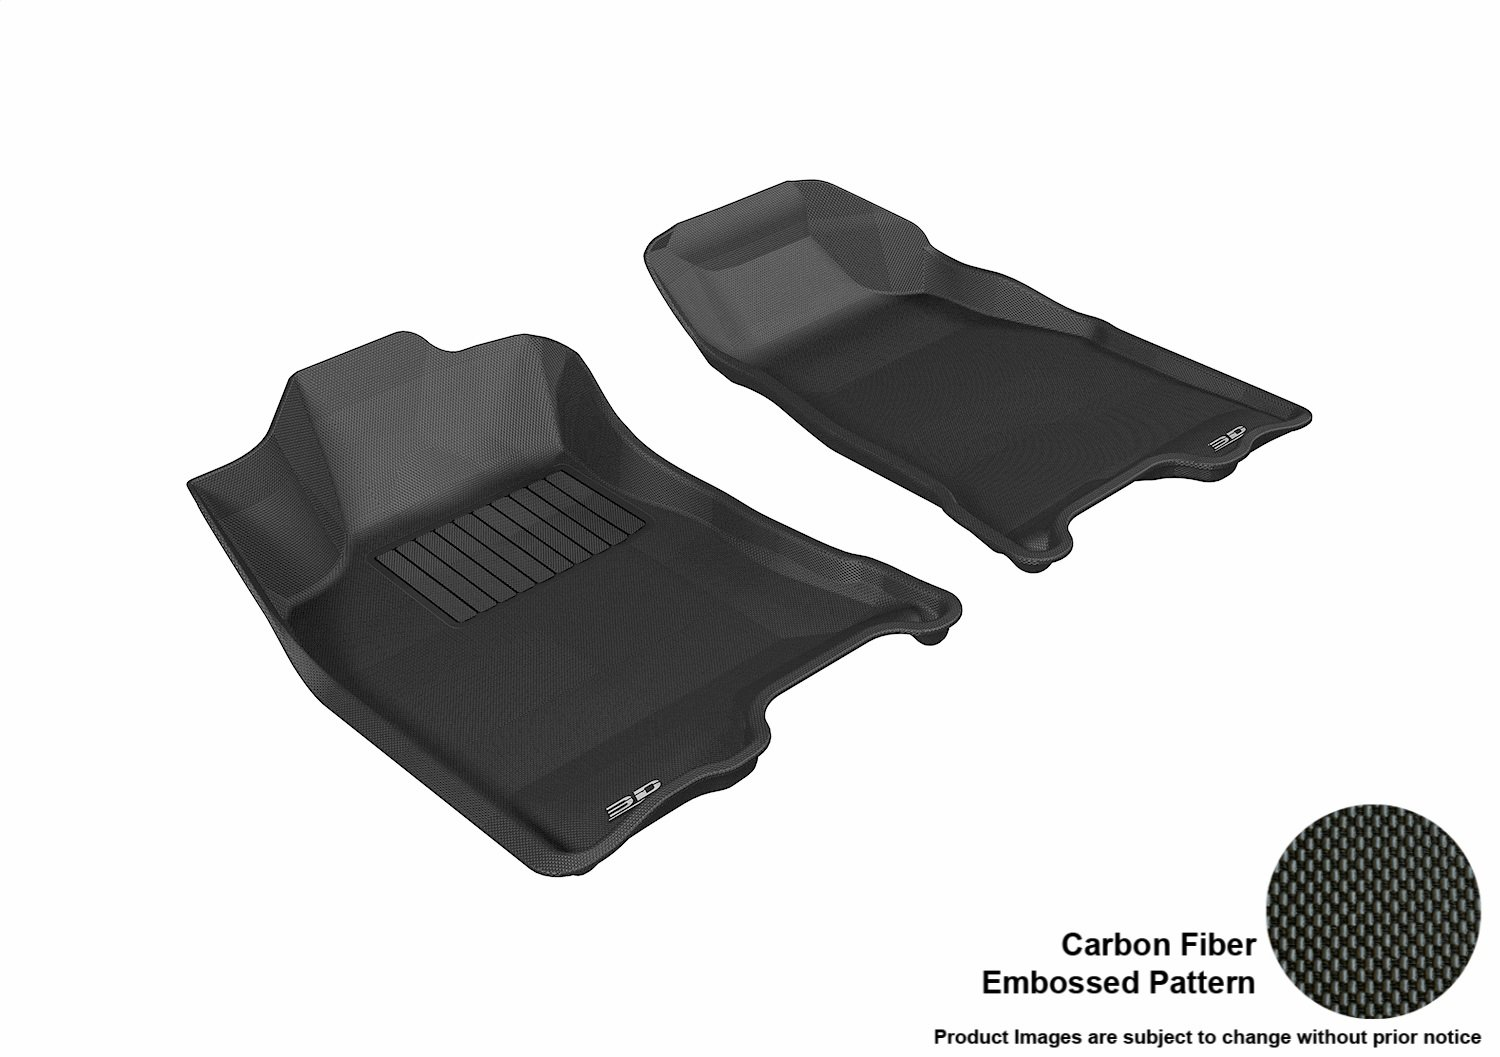 3D MAXpider Second Row Custom Fit All-Weather Floor Mat for Select Chevrolet Colorado Models Kagu Rubber Tan